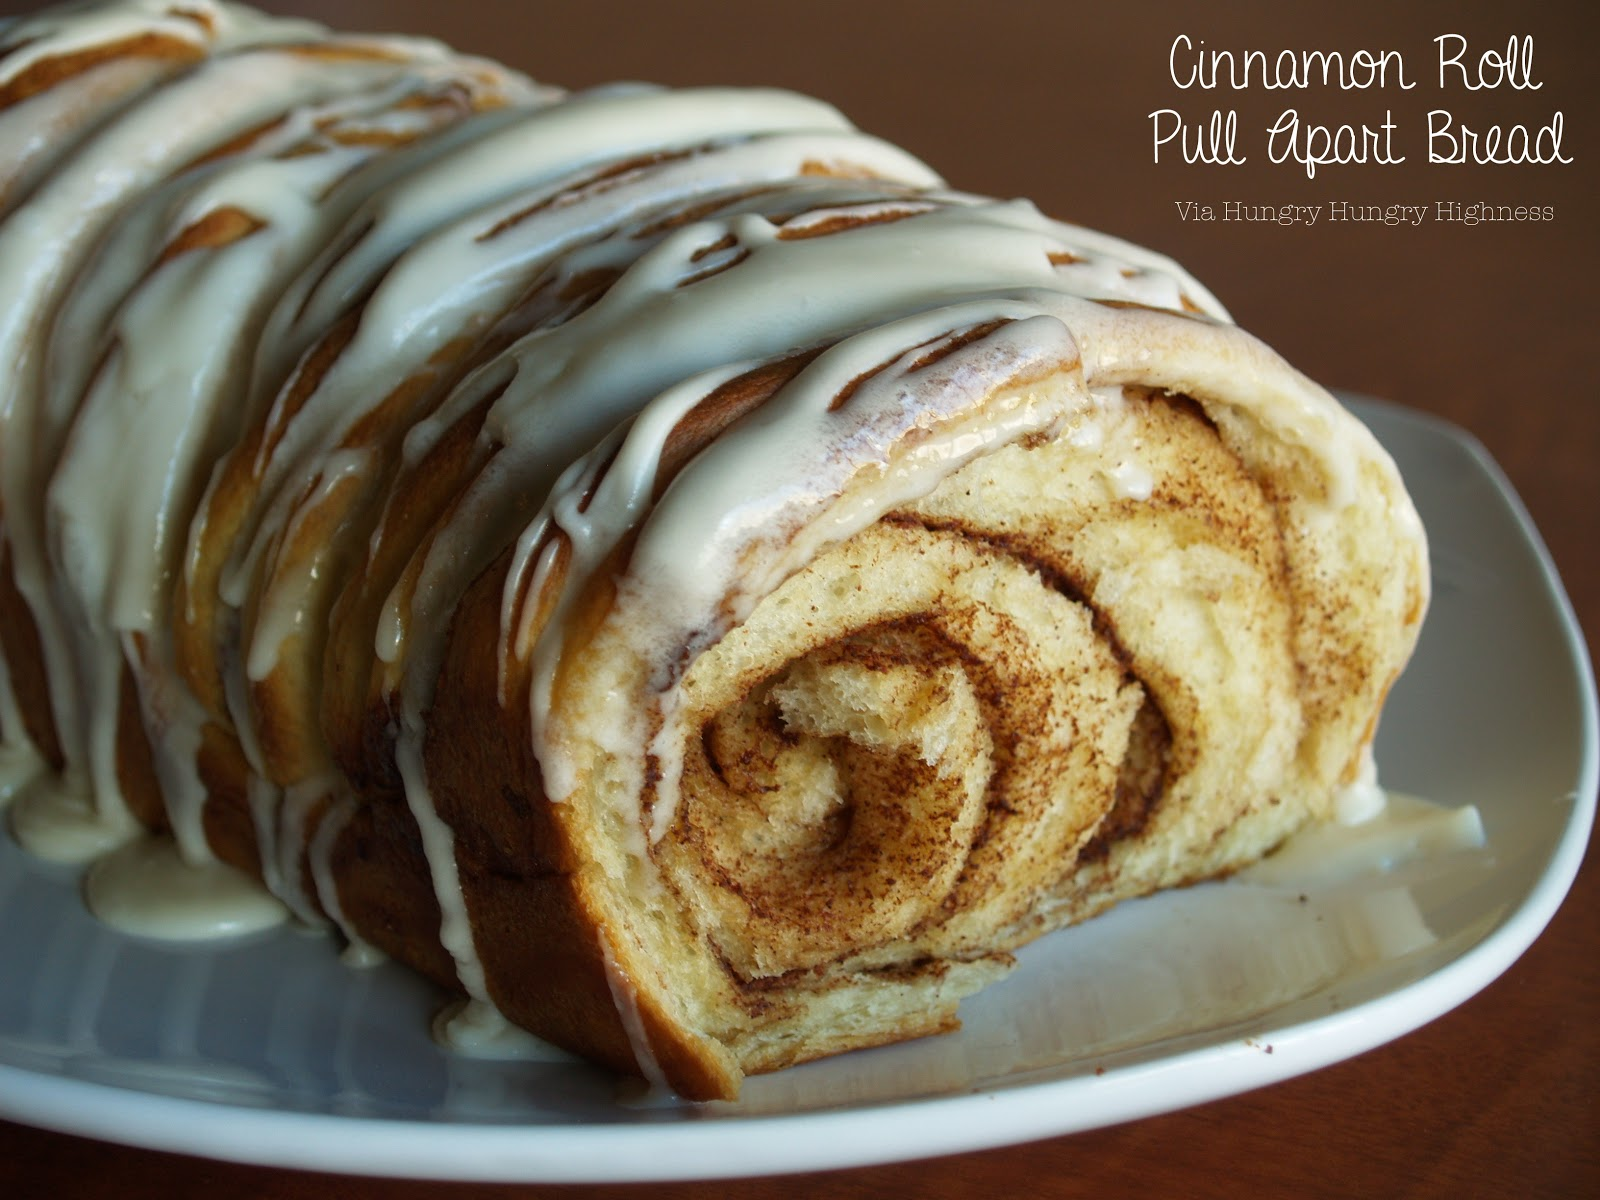 Hungry Hungry Highness: Cinnamon Roll Pull Apart Bread